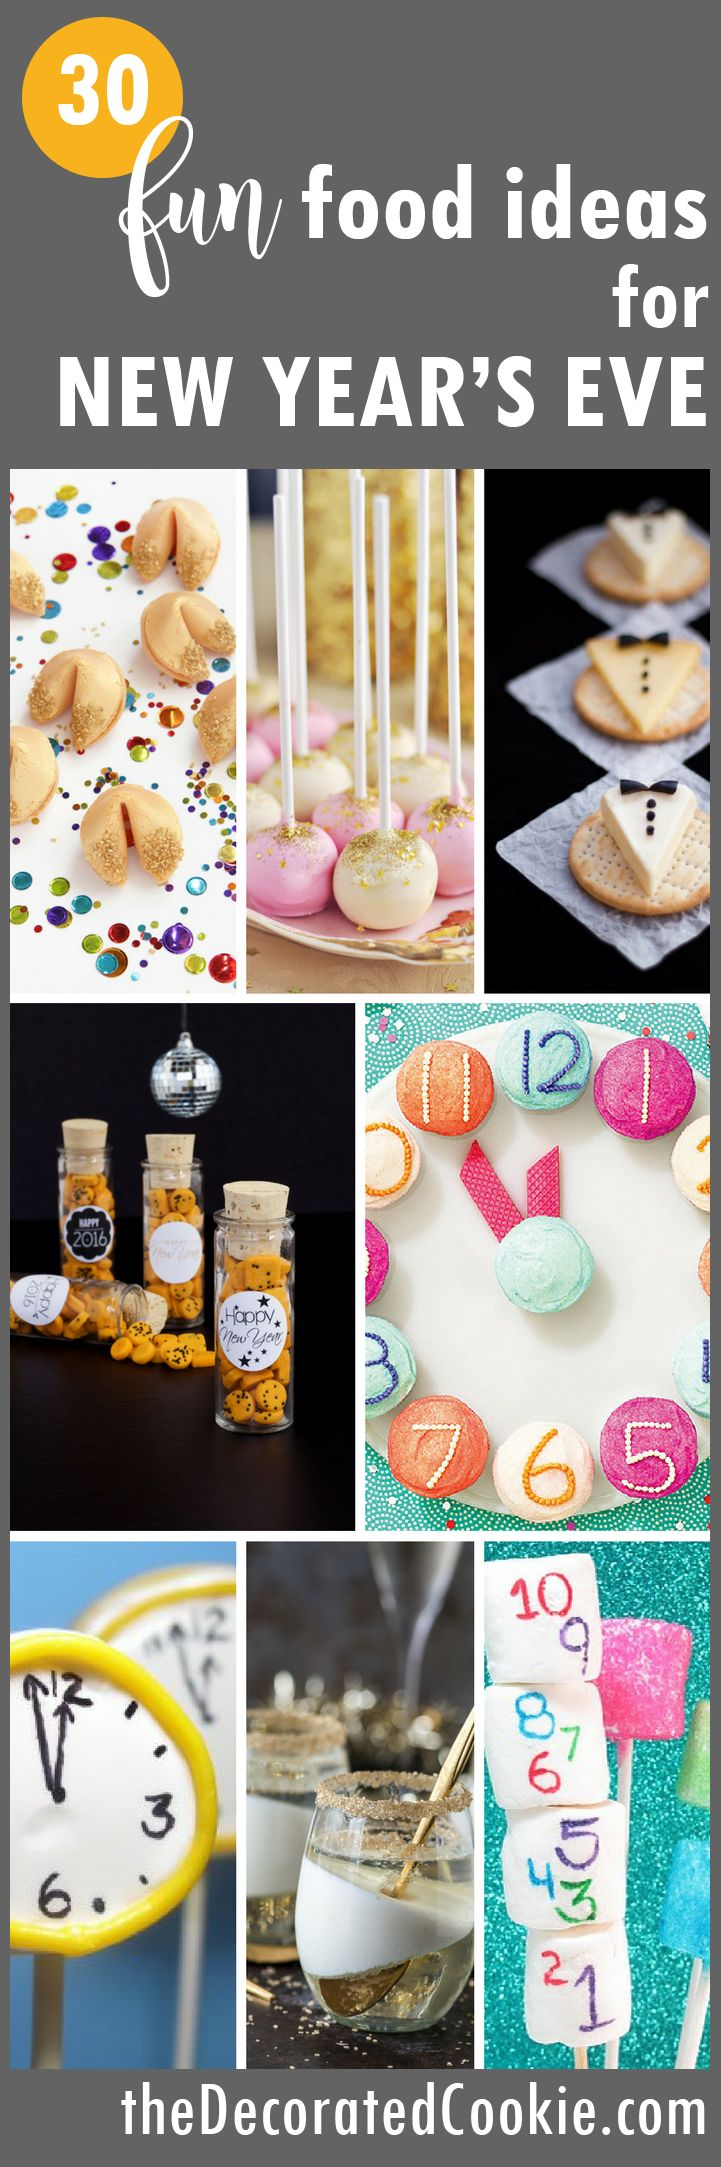 FUN FOOD ideas for New Year's Eve -- roundup of awesome, clever food for your New Year's party